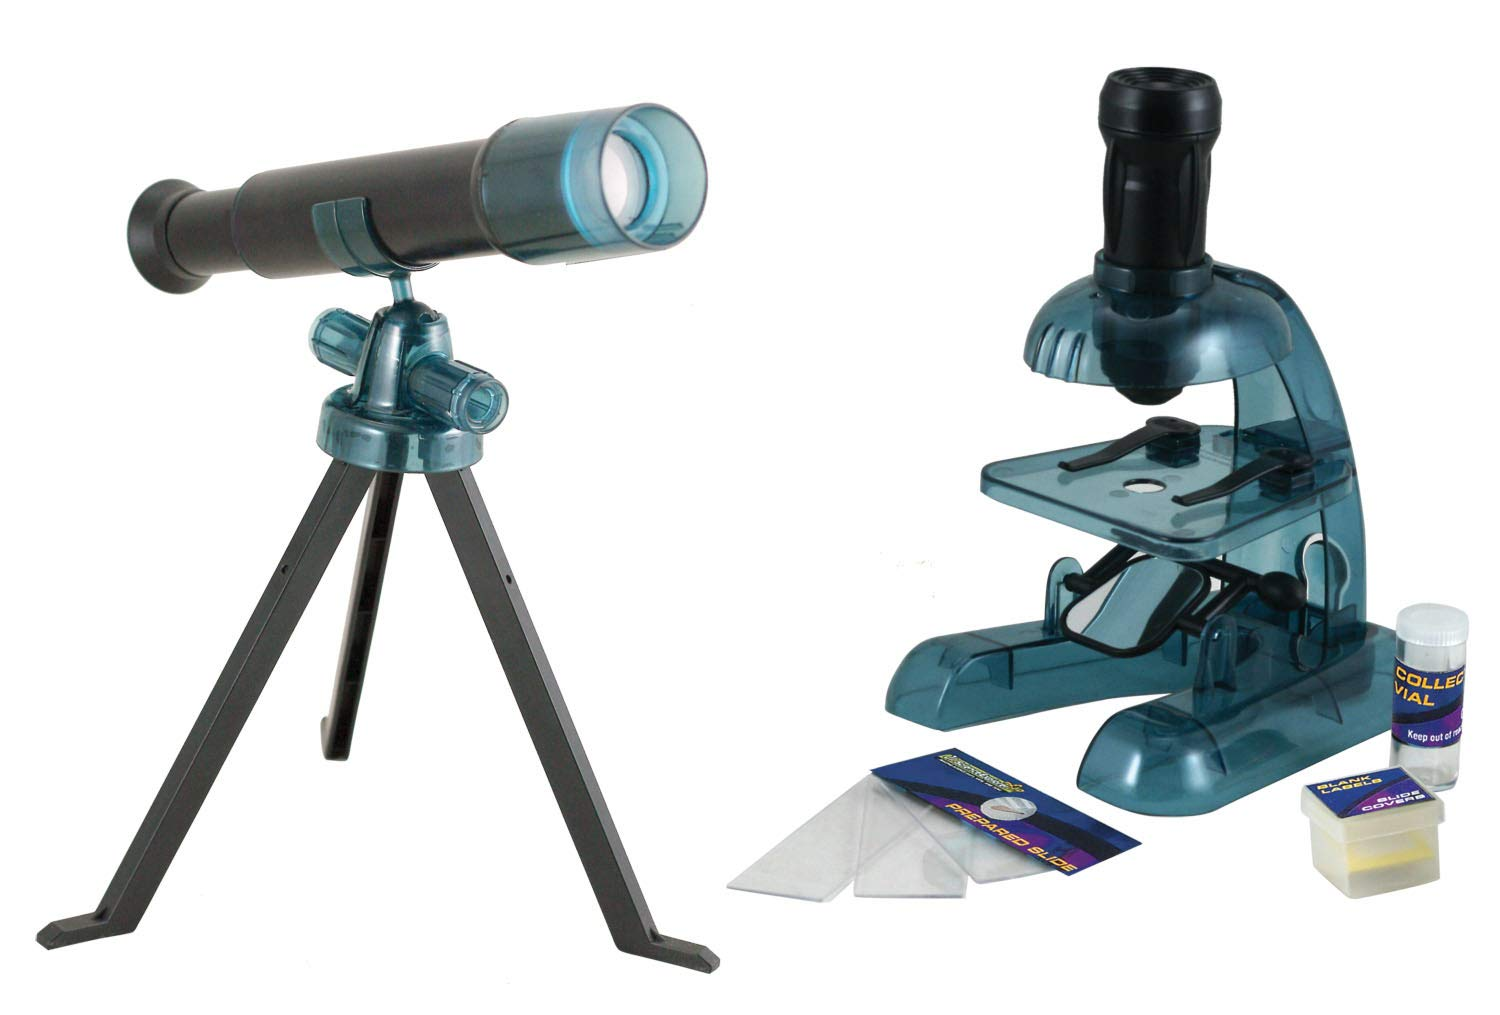 FUN DISCOVERY SCIENCE INSECT PEN GADGET ACTIVITY POCKET MICROSCOPE /& TELESCOPE